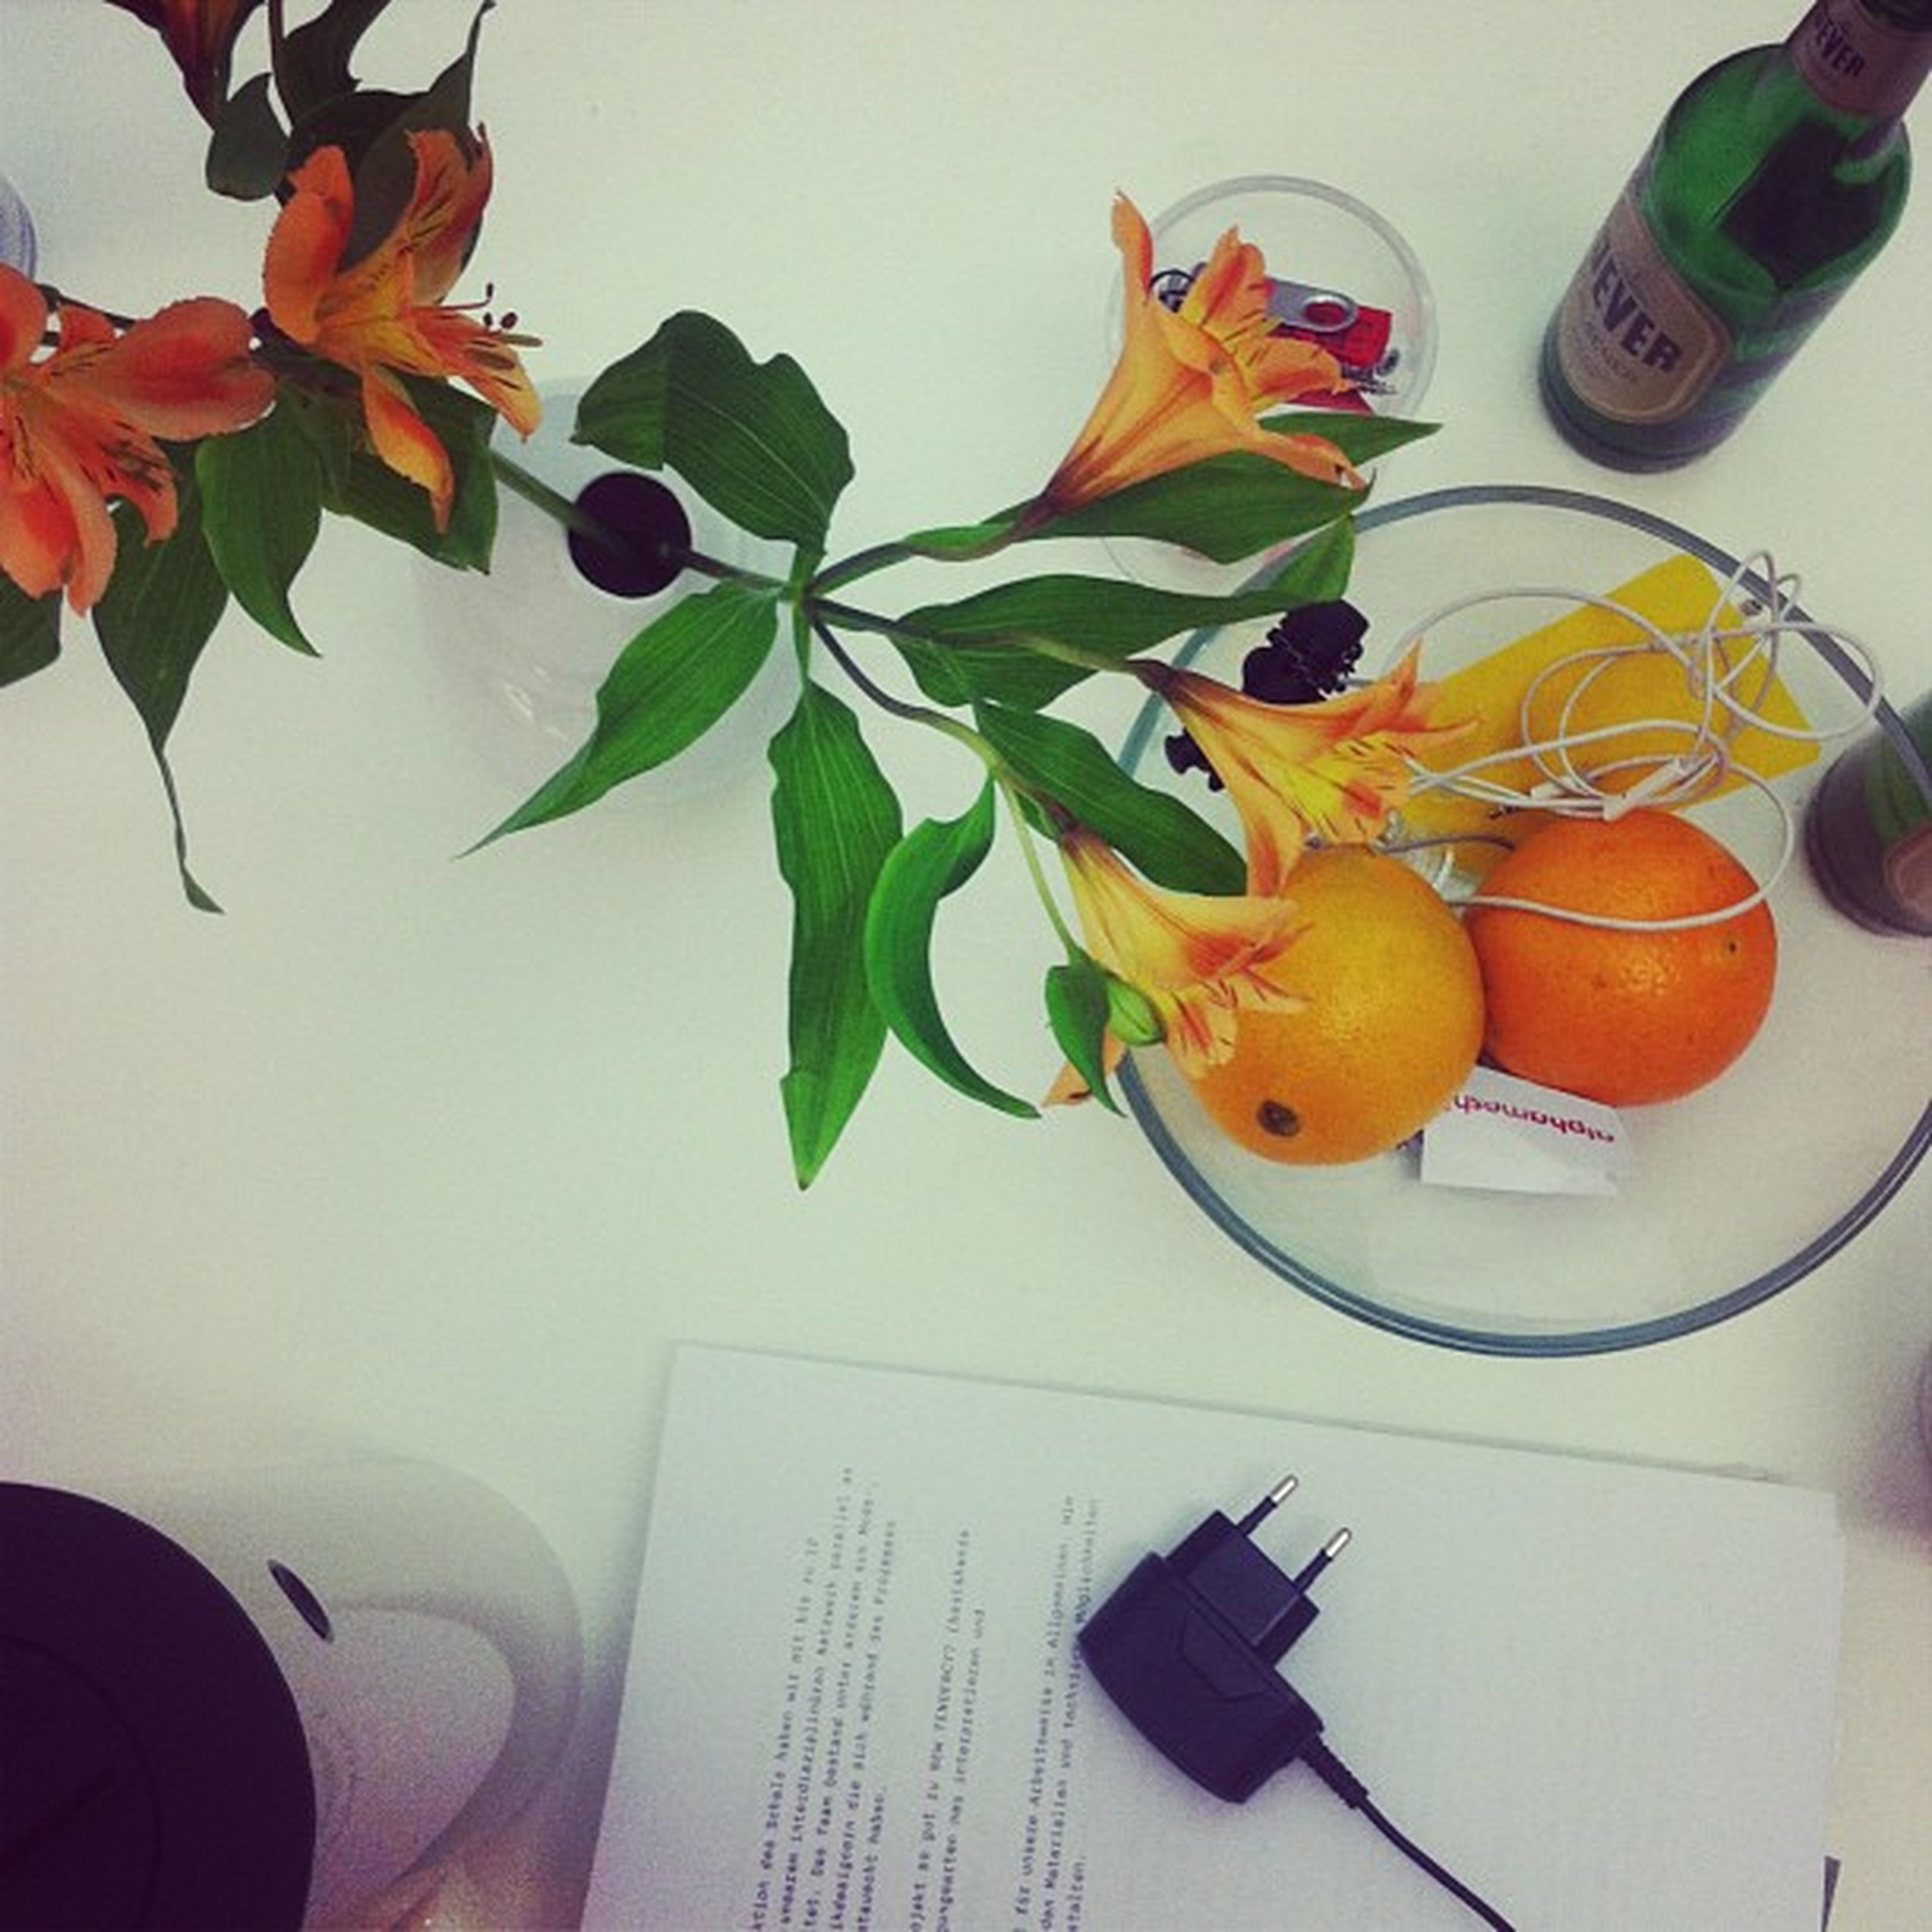 indoors, table, variation, freshness, multi colored, orange color, still life, flower, yellow, high angle view, leaf, vase, white background, close-up, paper, home interior, food and drink, wall - building feature, cropped, no people